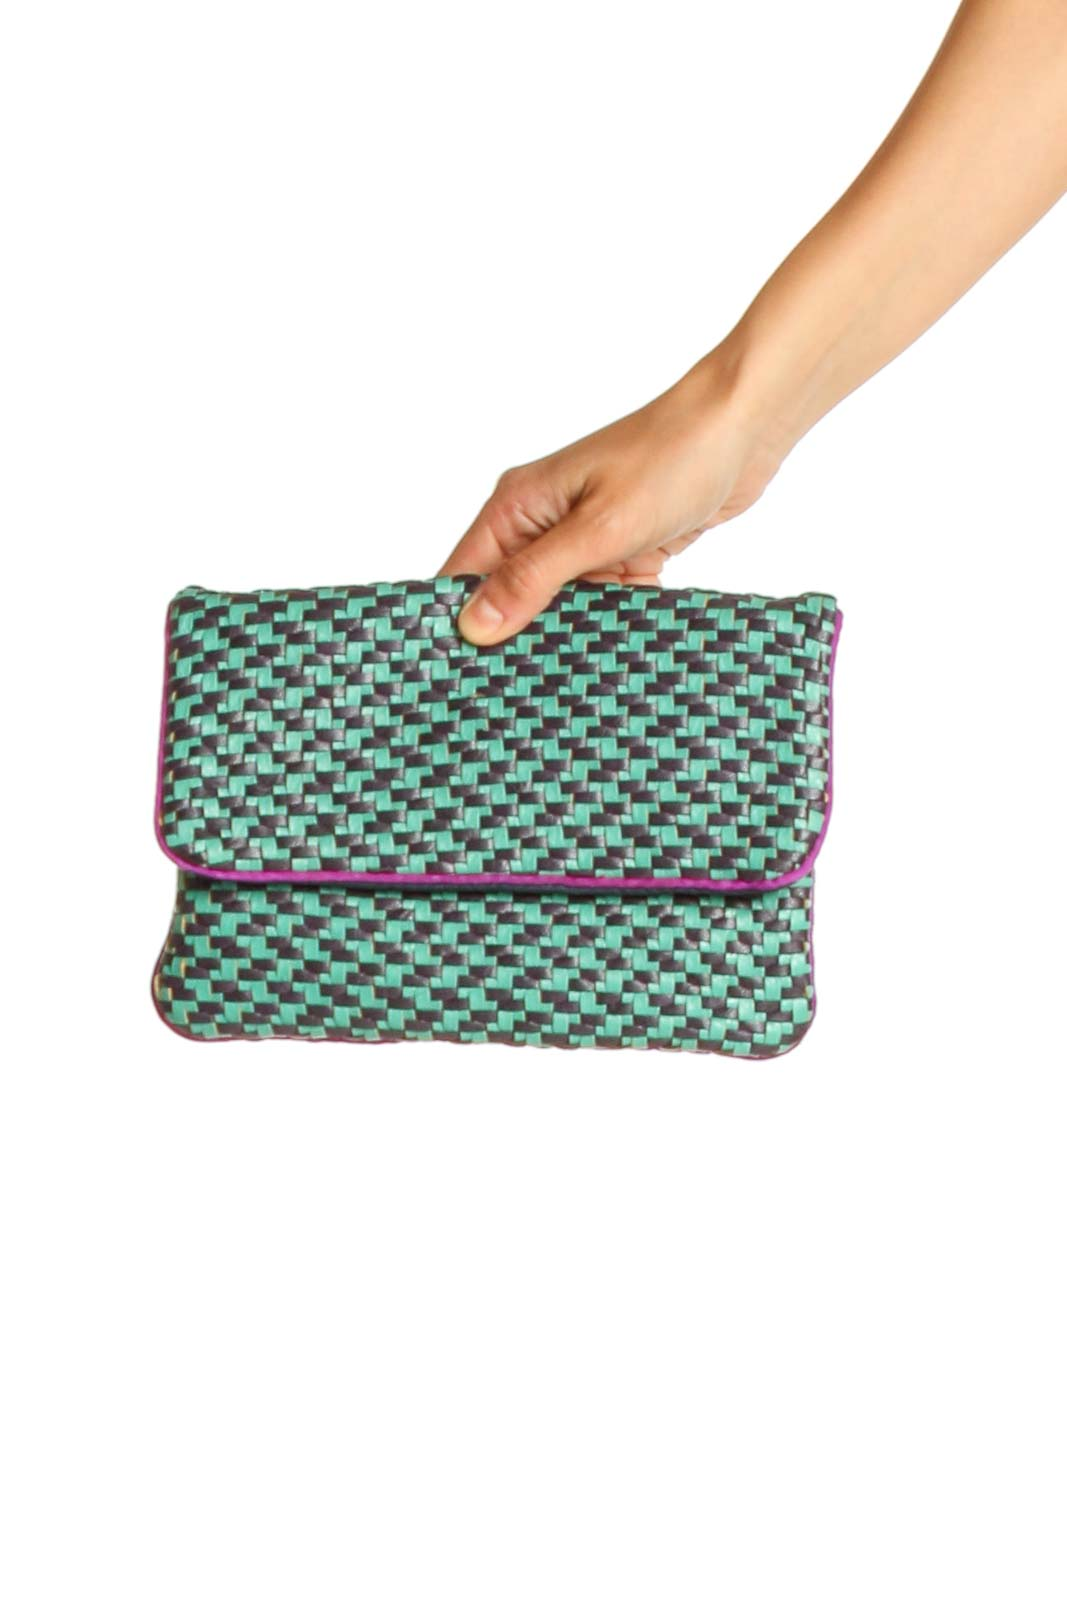 Green Clutch Bag Front